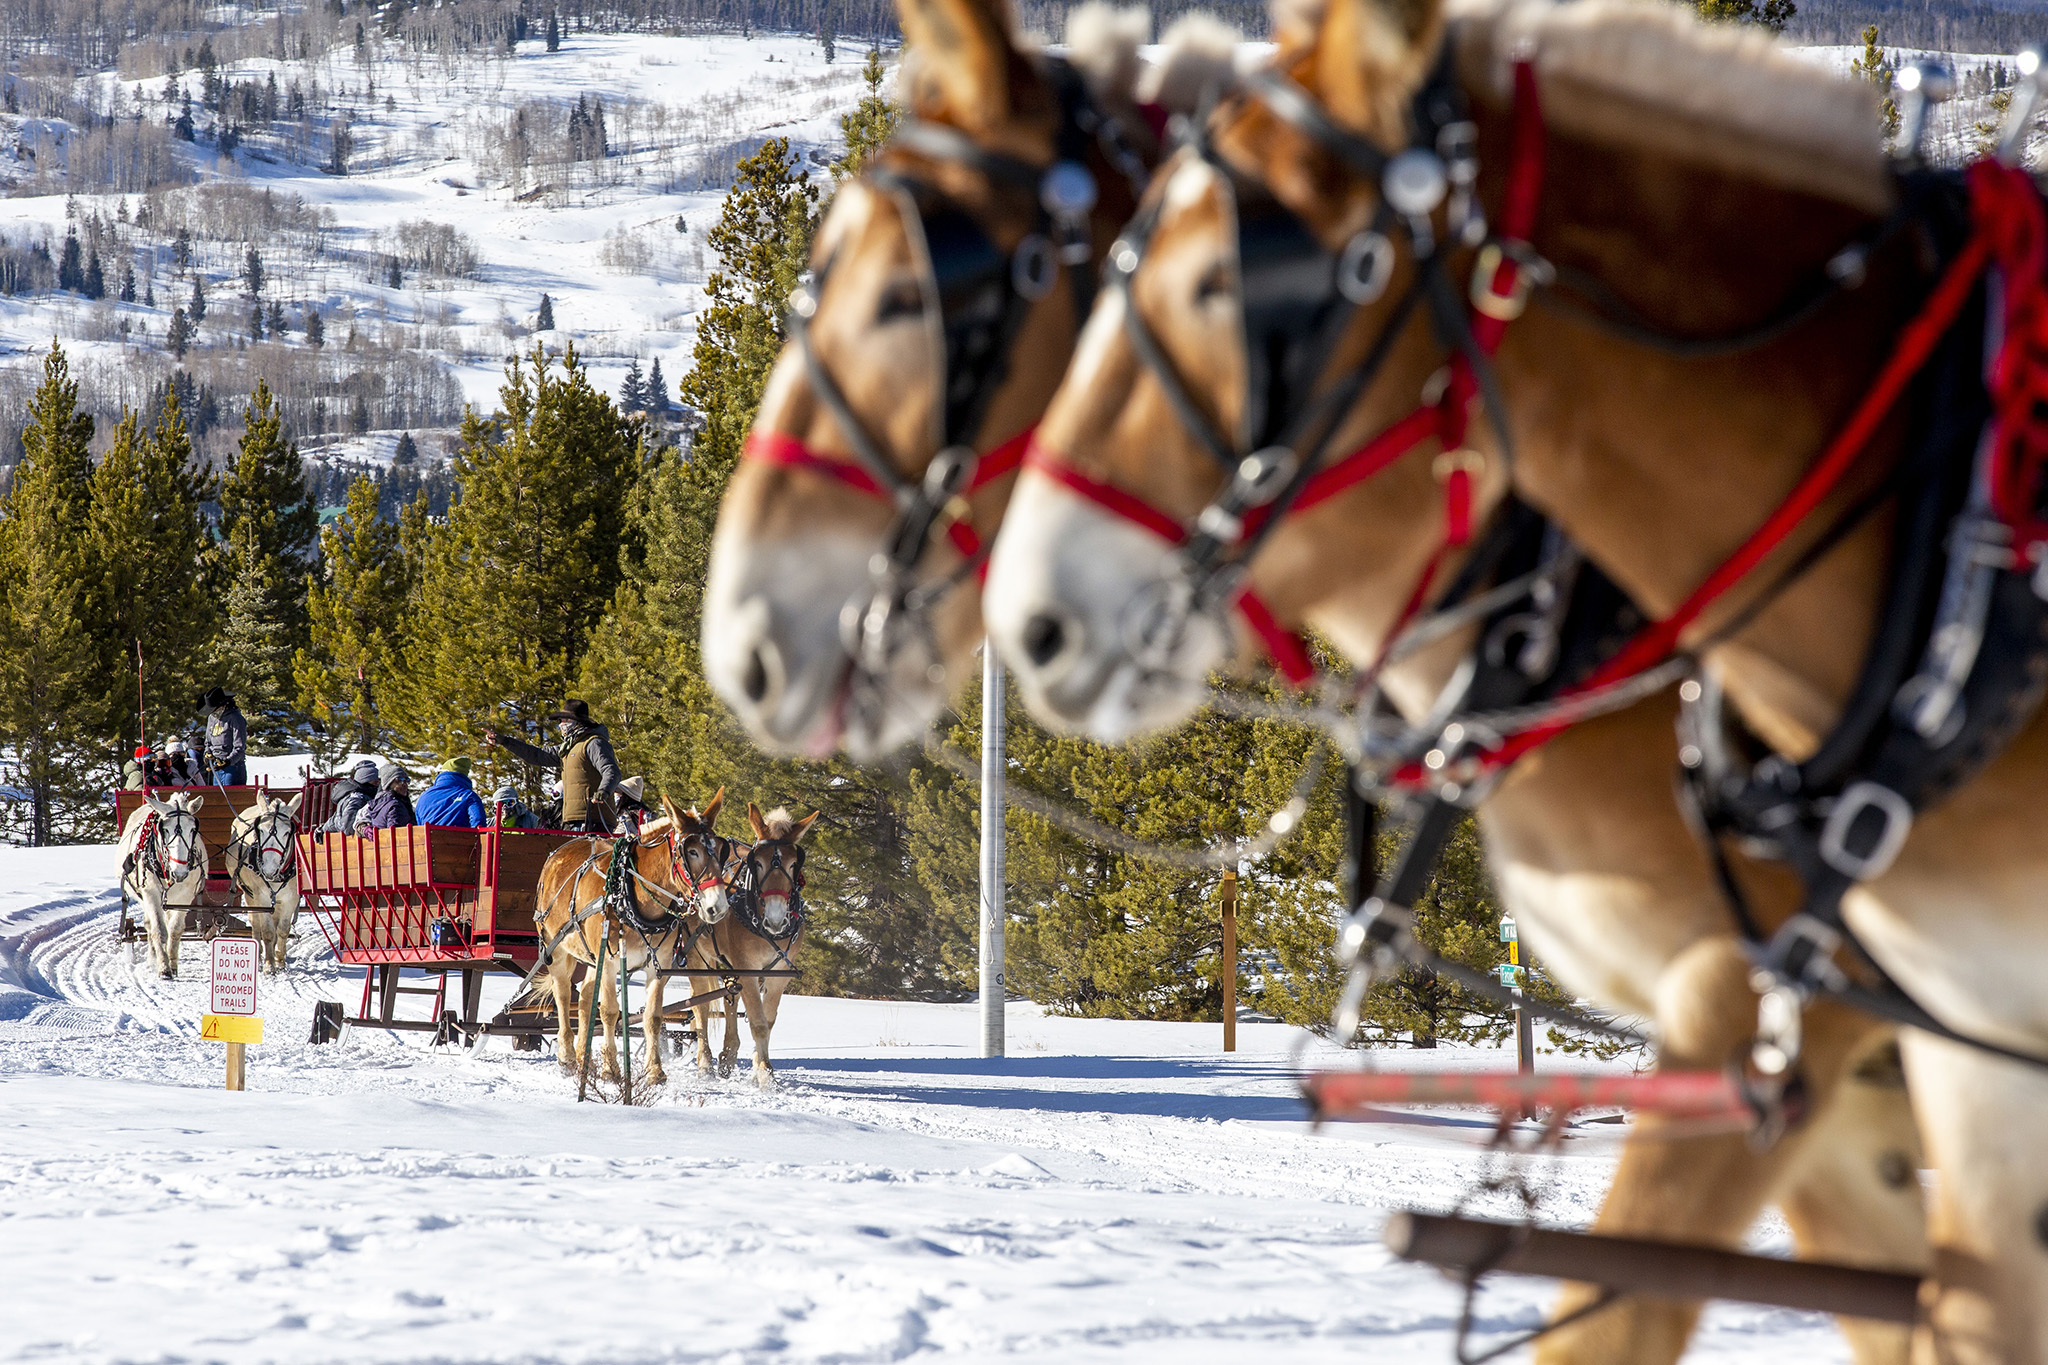 2 Below Zero scenic sleigh rides on the edge of Frisco, Colo. Feb. 25, 2021.